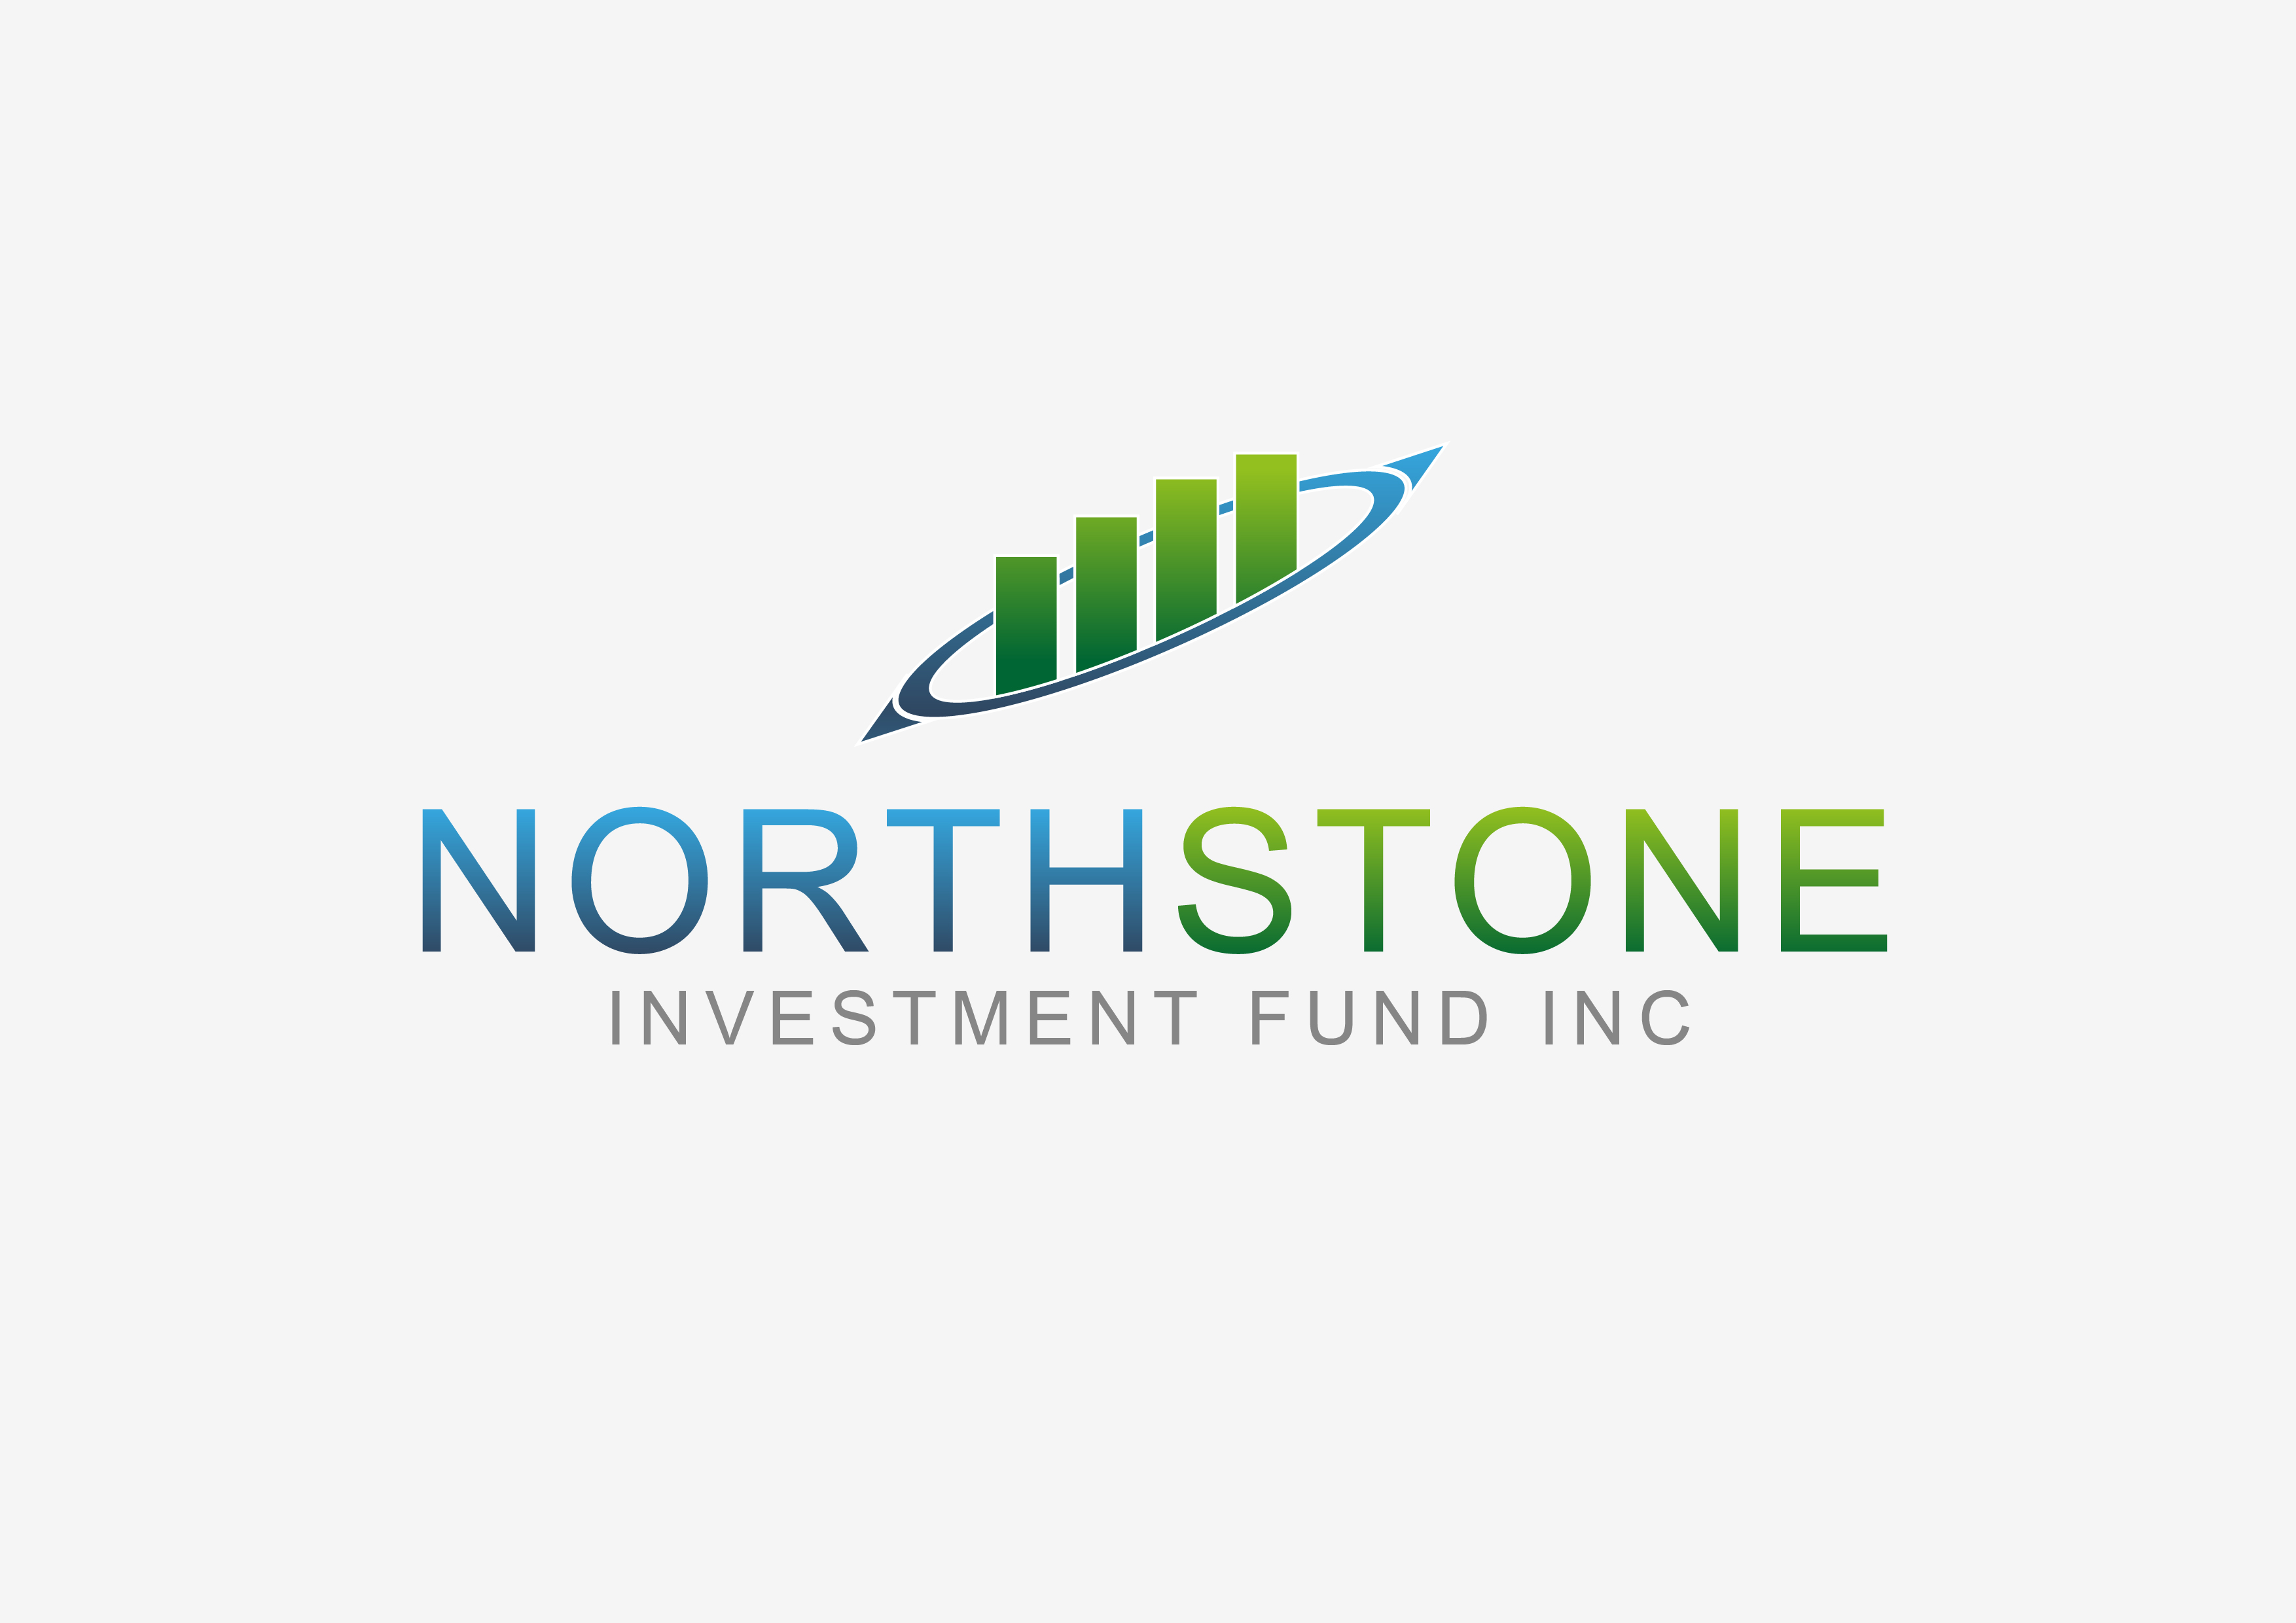 Logo Design by 3draw - Entry No. 126 in the Logo Design Contest Unique Logo Design Wanted for NorthStone Investment Fund Inc.